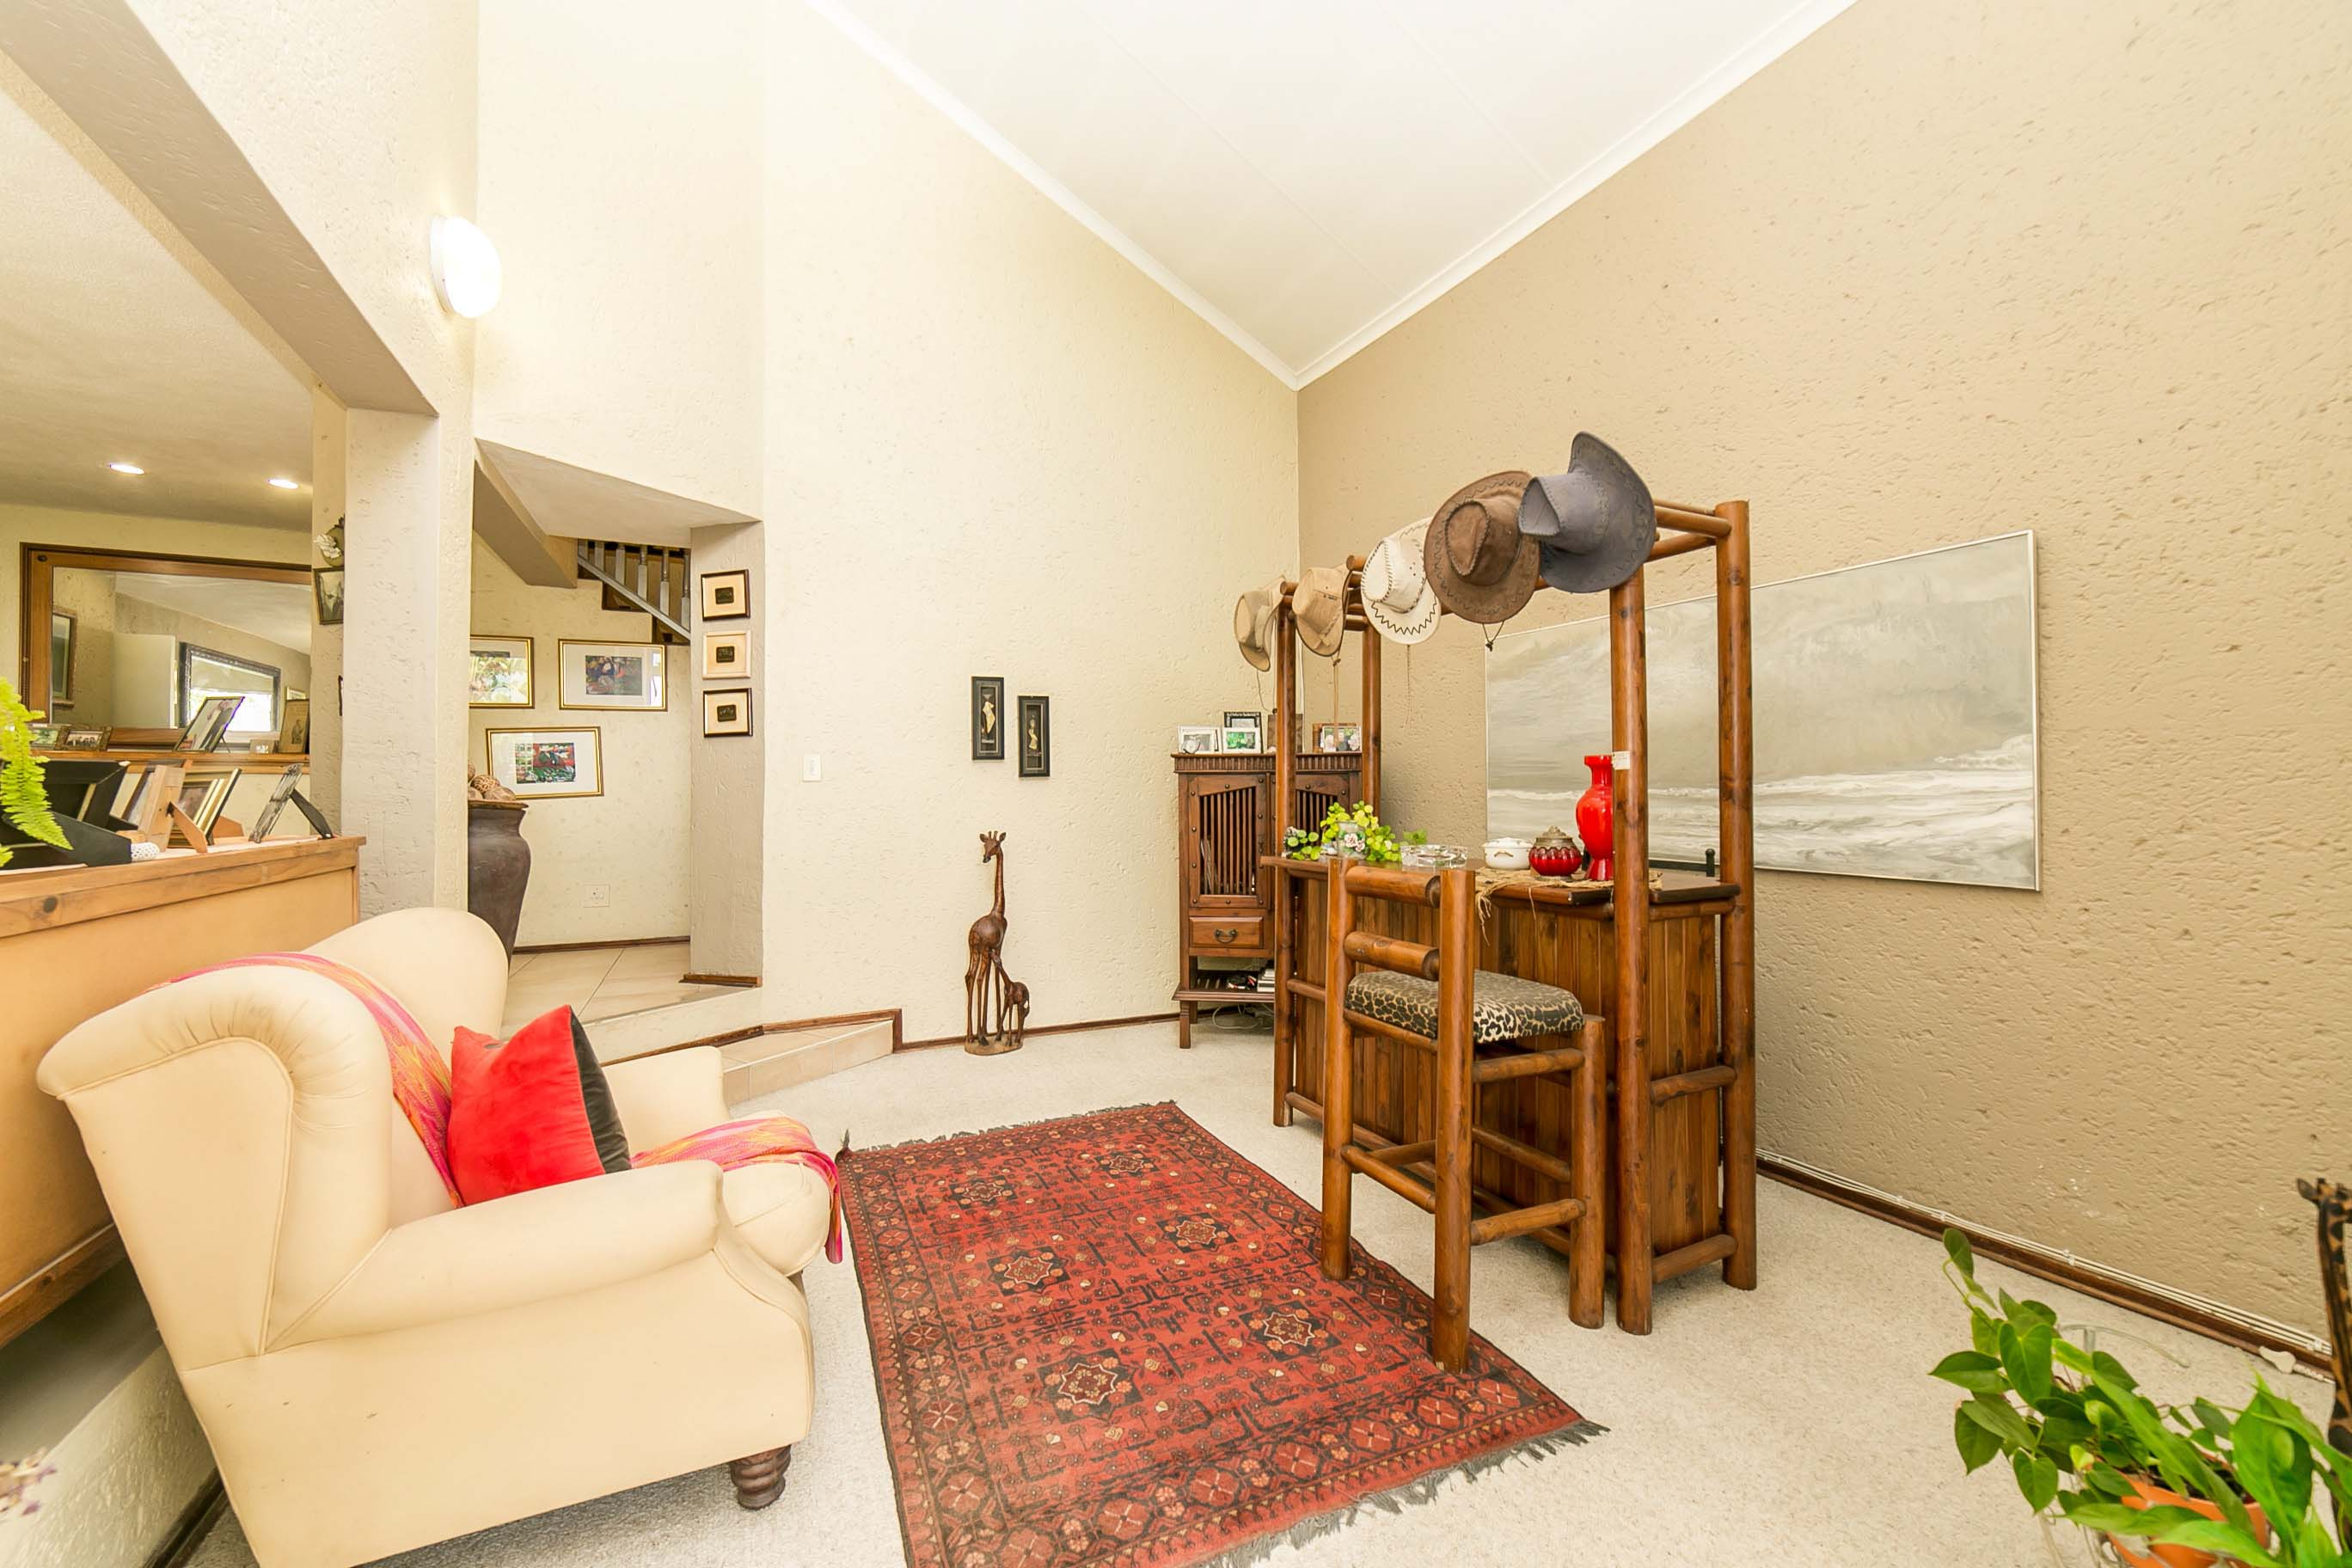 4 Bedroom House for sale in Lonehill ENT0082001 : photo#4